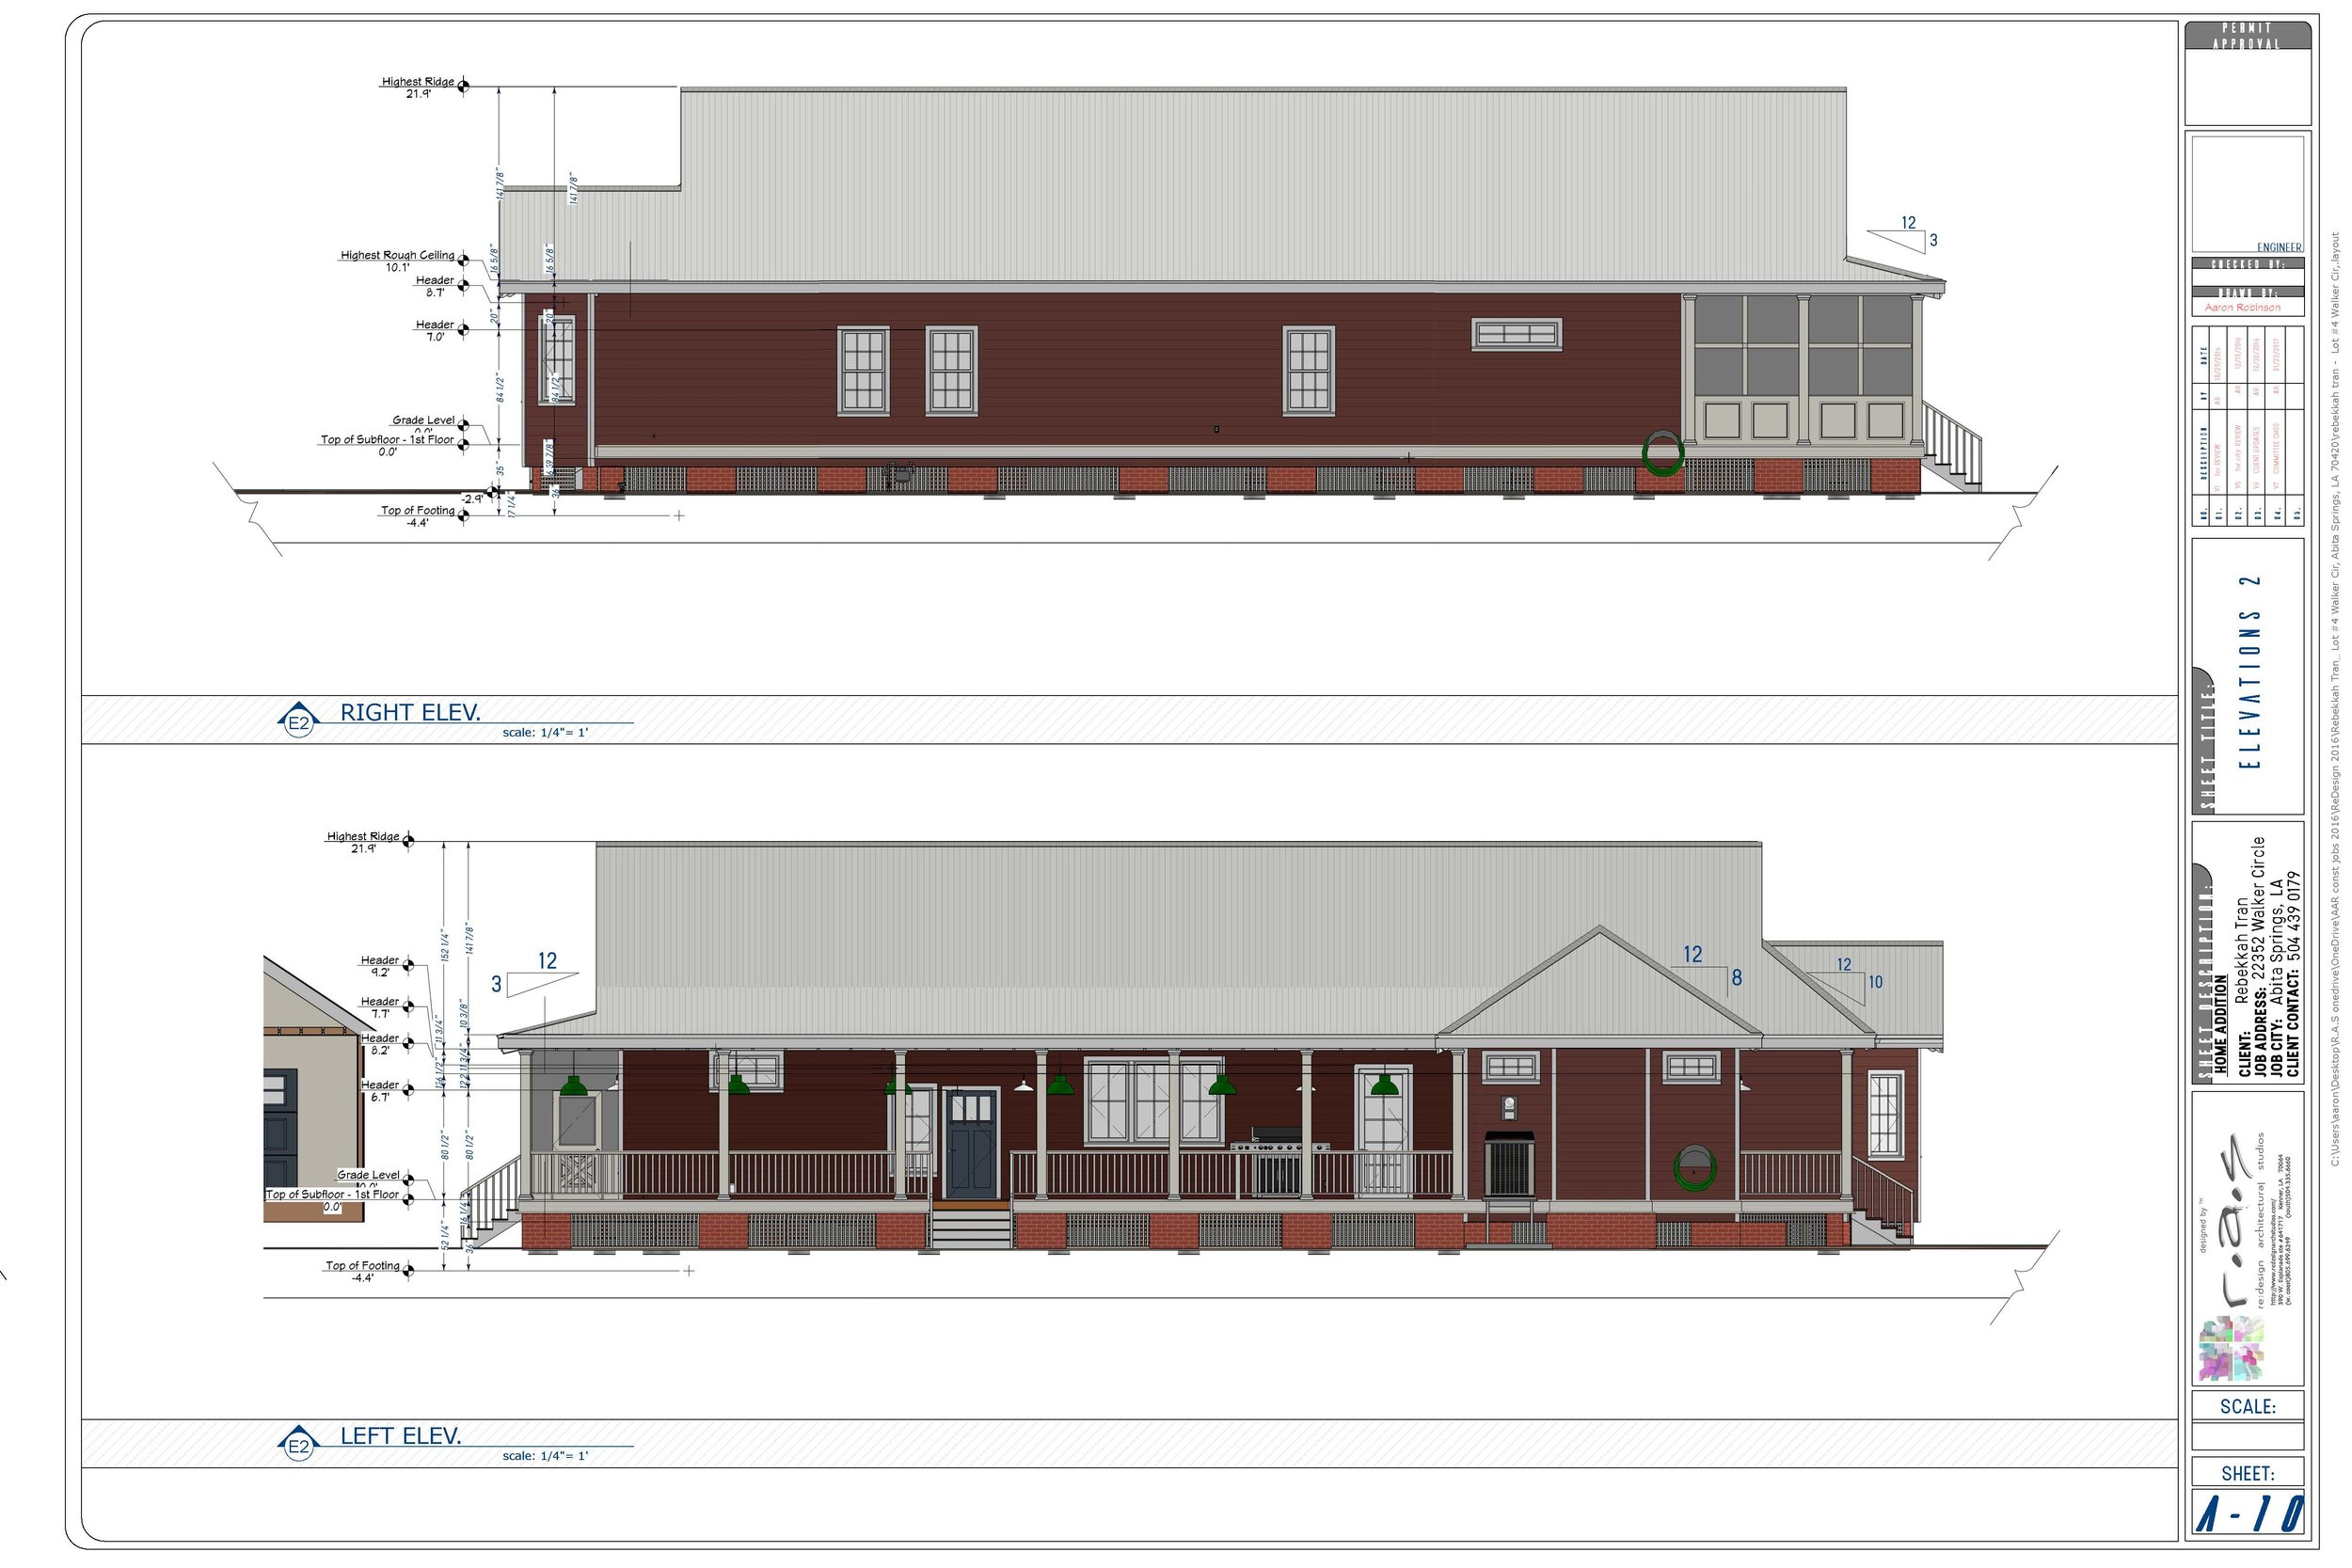 rebekkah Tran_ 22352 Walker Cir, final layout - V7  01232017_Page_10.jpg